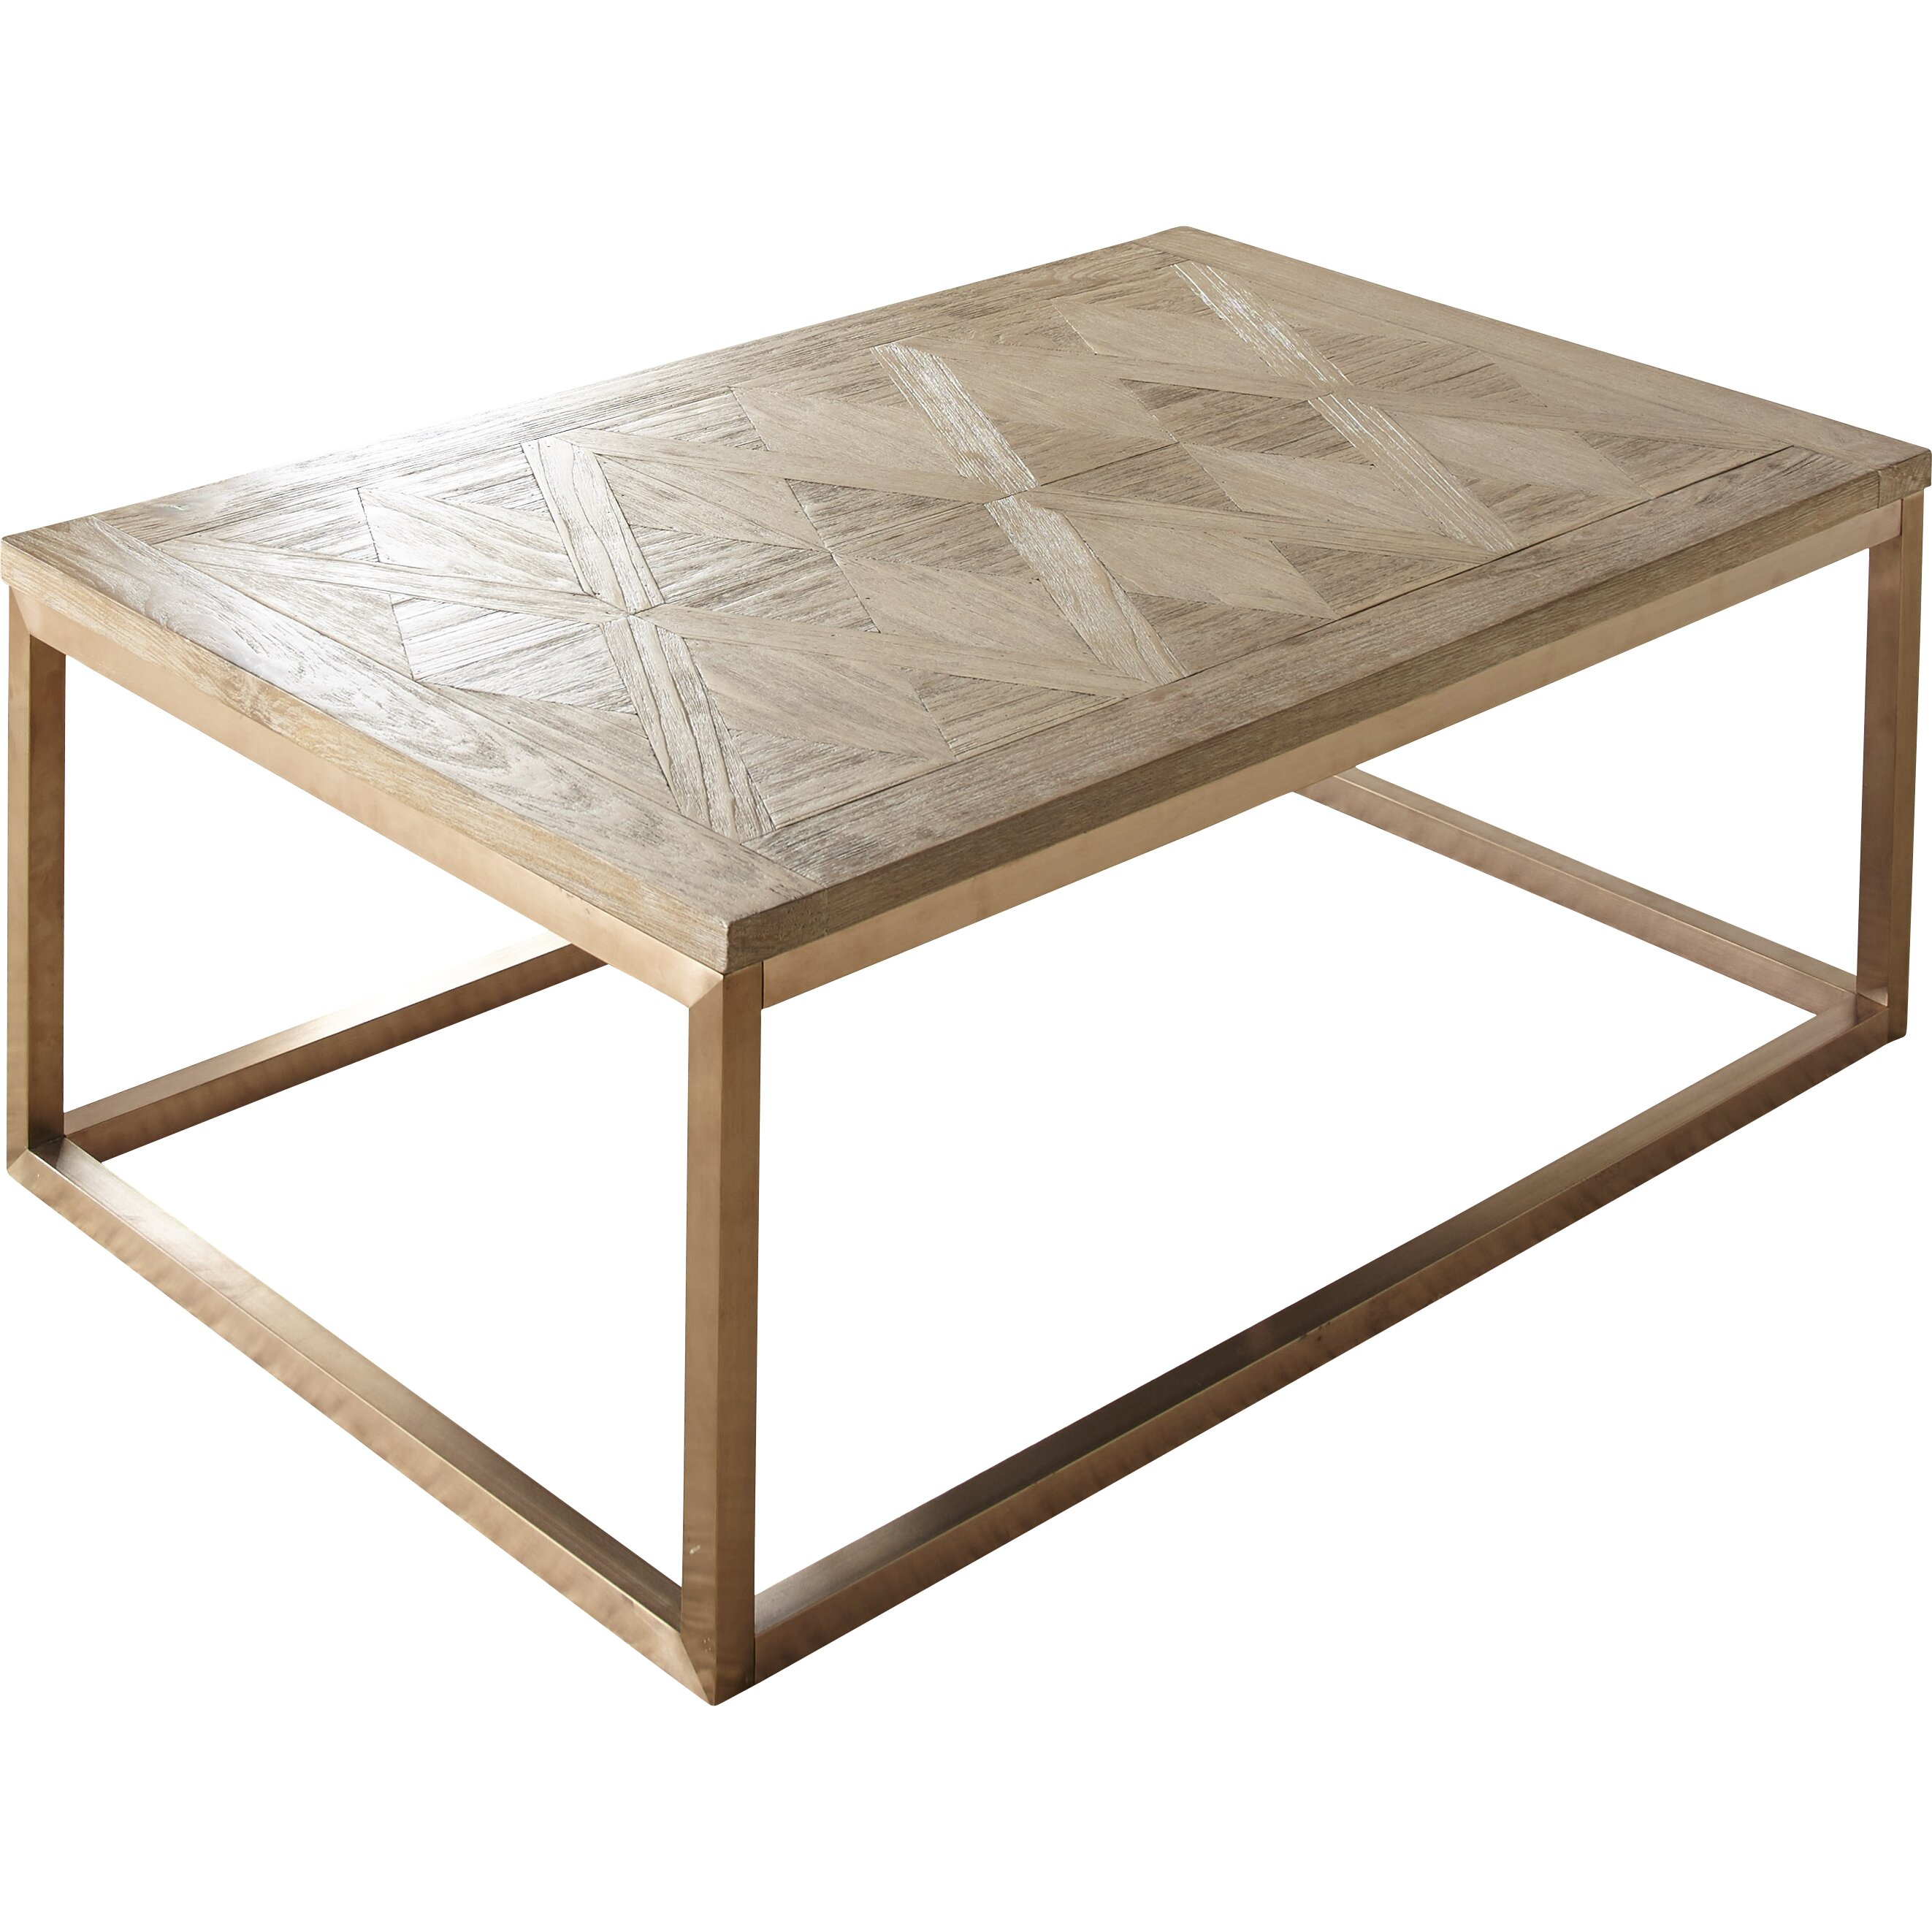 Laurel foundry modern farmhouse umbra coffee table for Modern farmhouse coffee table